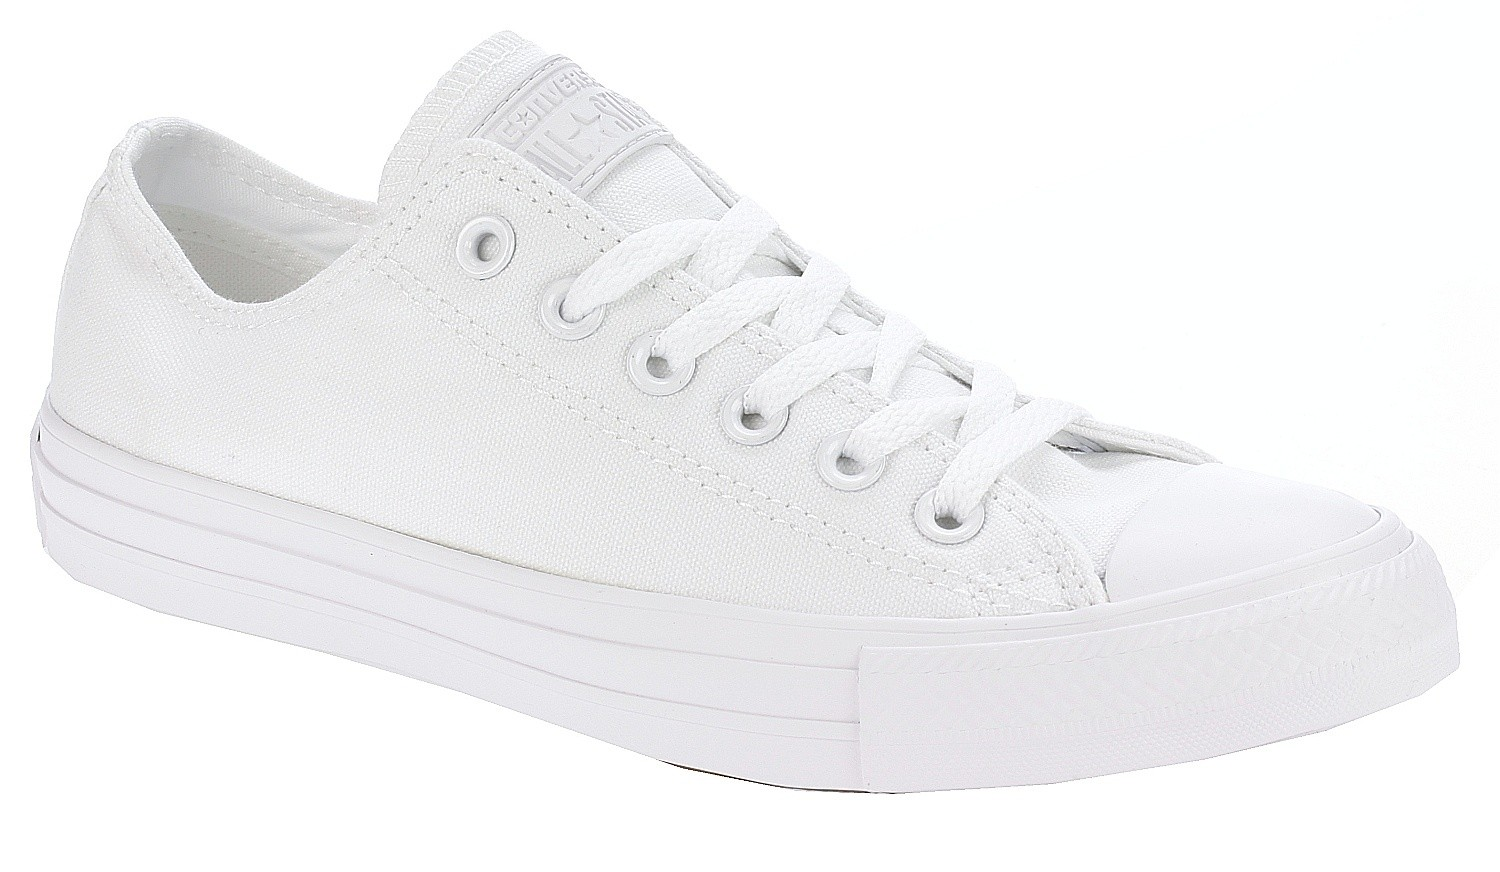 Converse Chuck Taylor® All Star® Ox - Seasonal Mono irDXBl